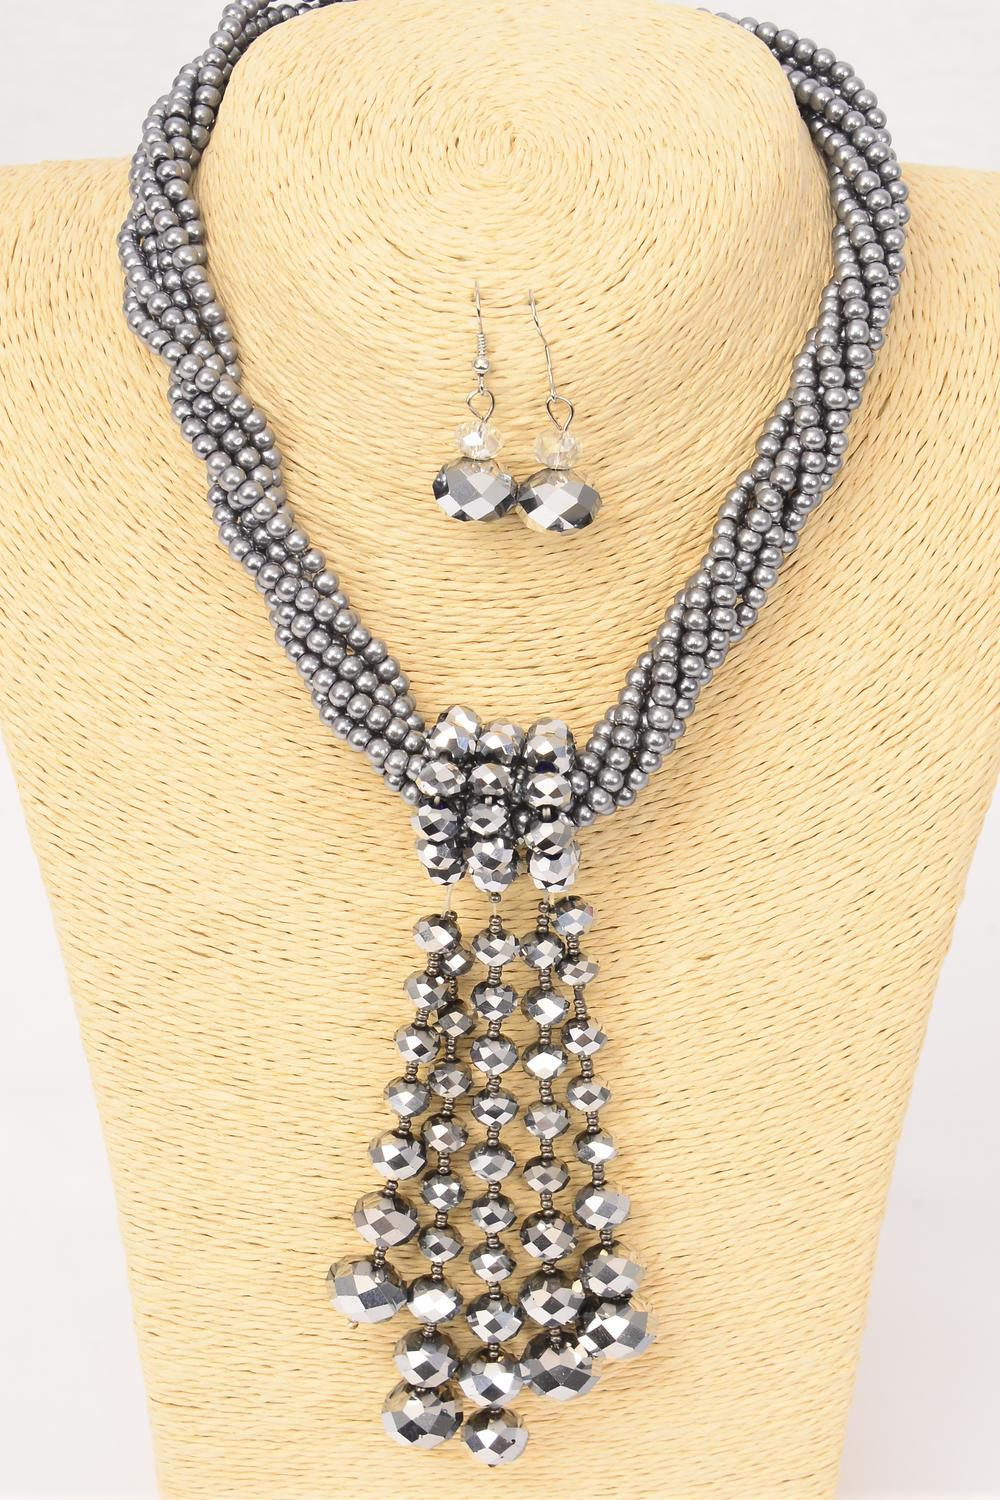 "Necklace Sets Gray Pearl & Glass Crystal Drop/Sets **Gray Pearl** Size-17"" Extension Chain,Hang Tag & OPP Bag & UPC Code -"